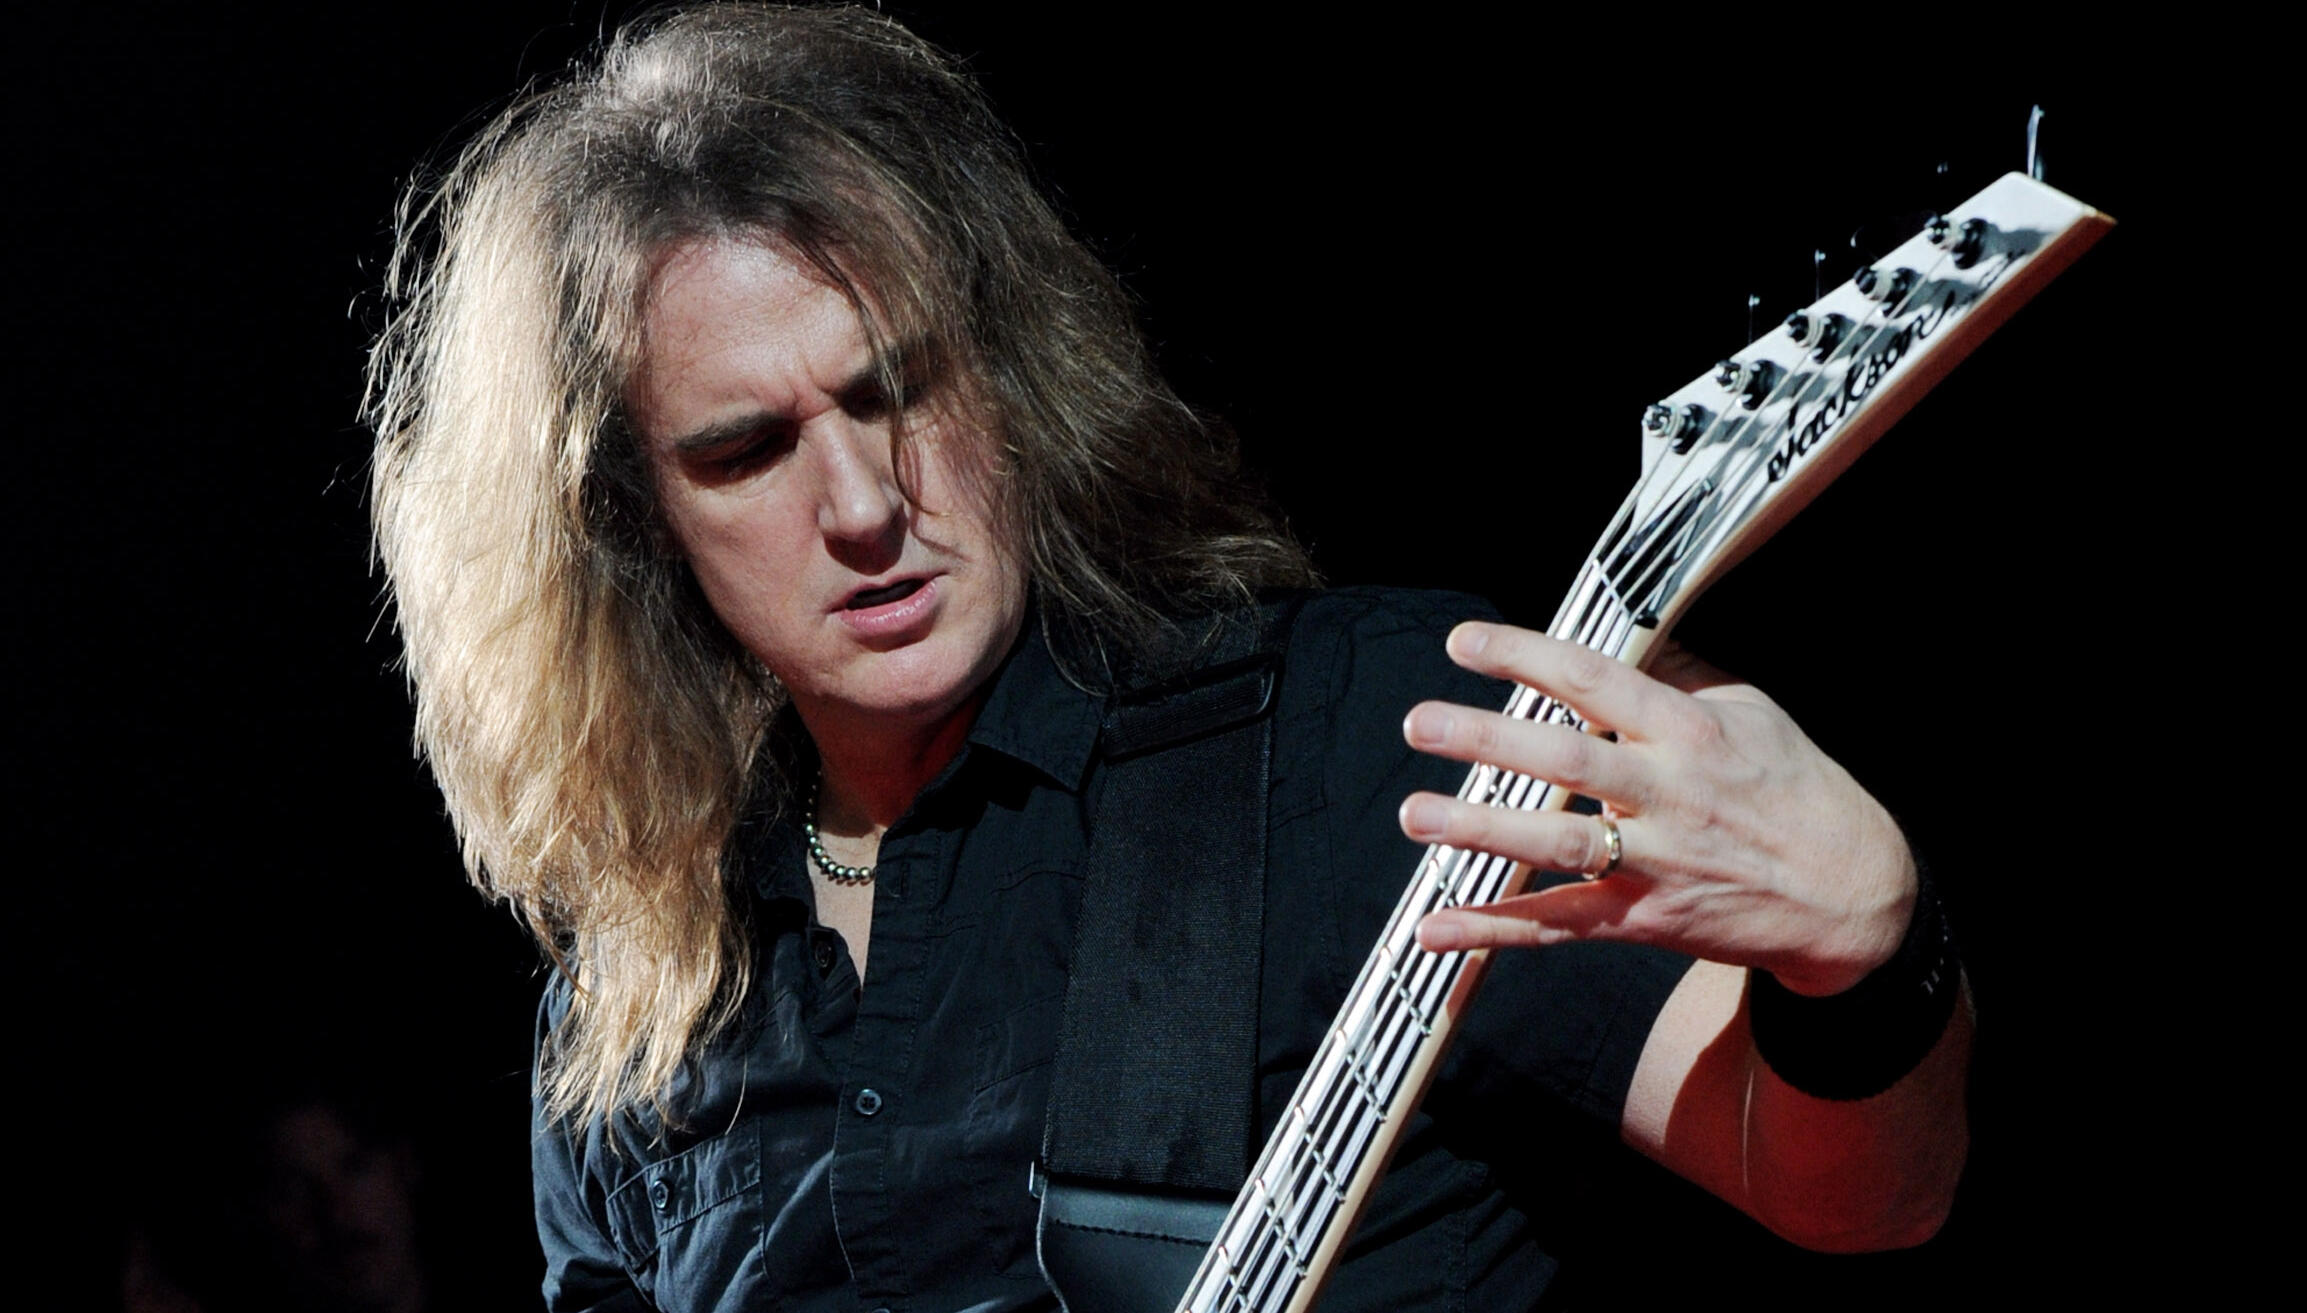 Dave Ellefson Will Press Charges Against Person Who Leaked Explicit Video